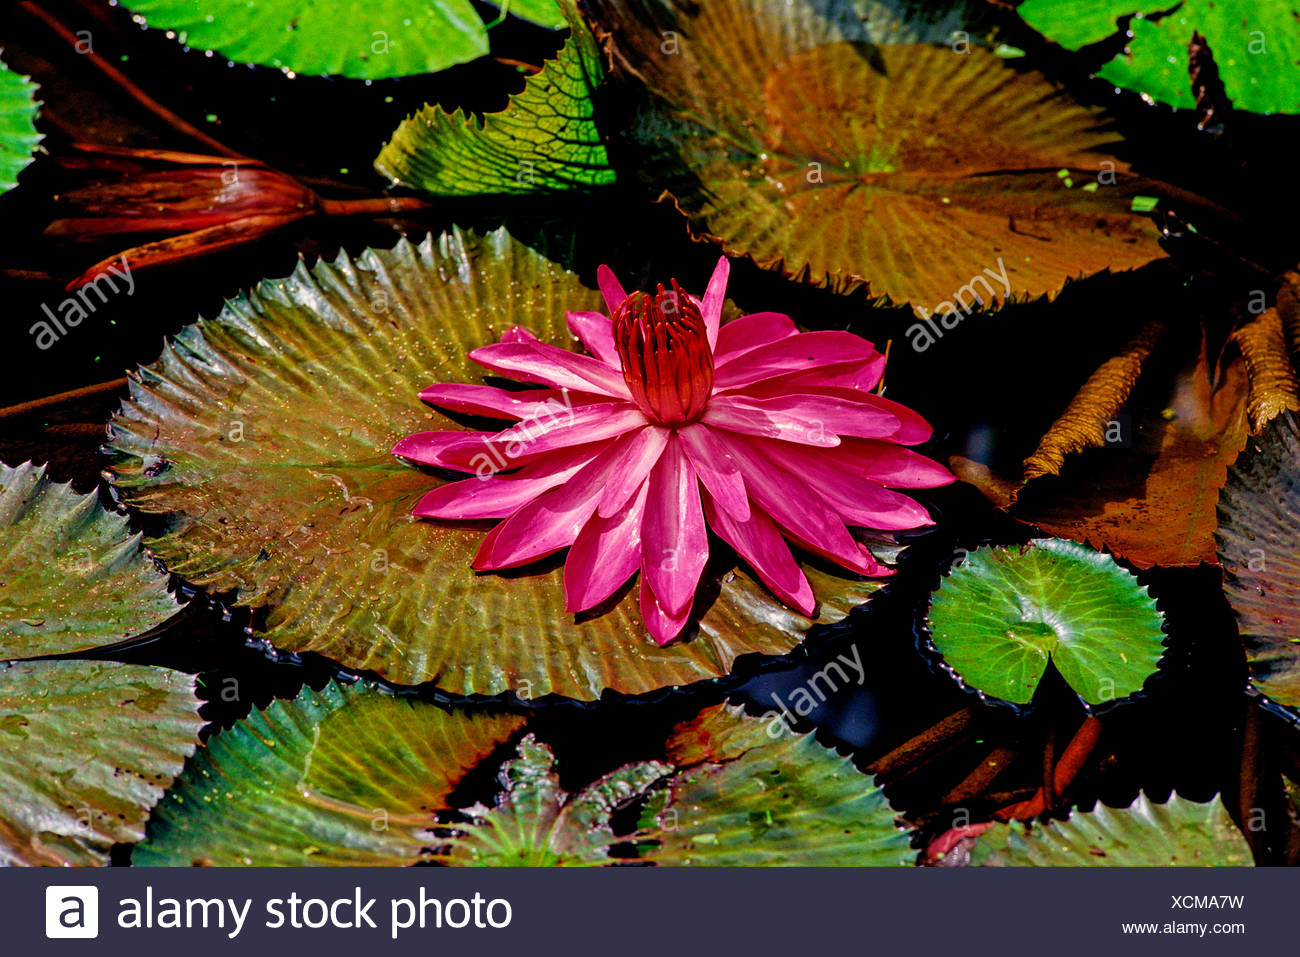 Cape blue water lily nymphaea capensis nymphaea waterlily cape blue water lily nymphaea capensis nymphaea waterlily nymphaeaceae aquatic plant plants flower flowers fl izmirmasajfo